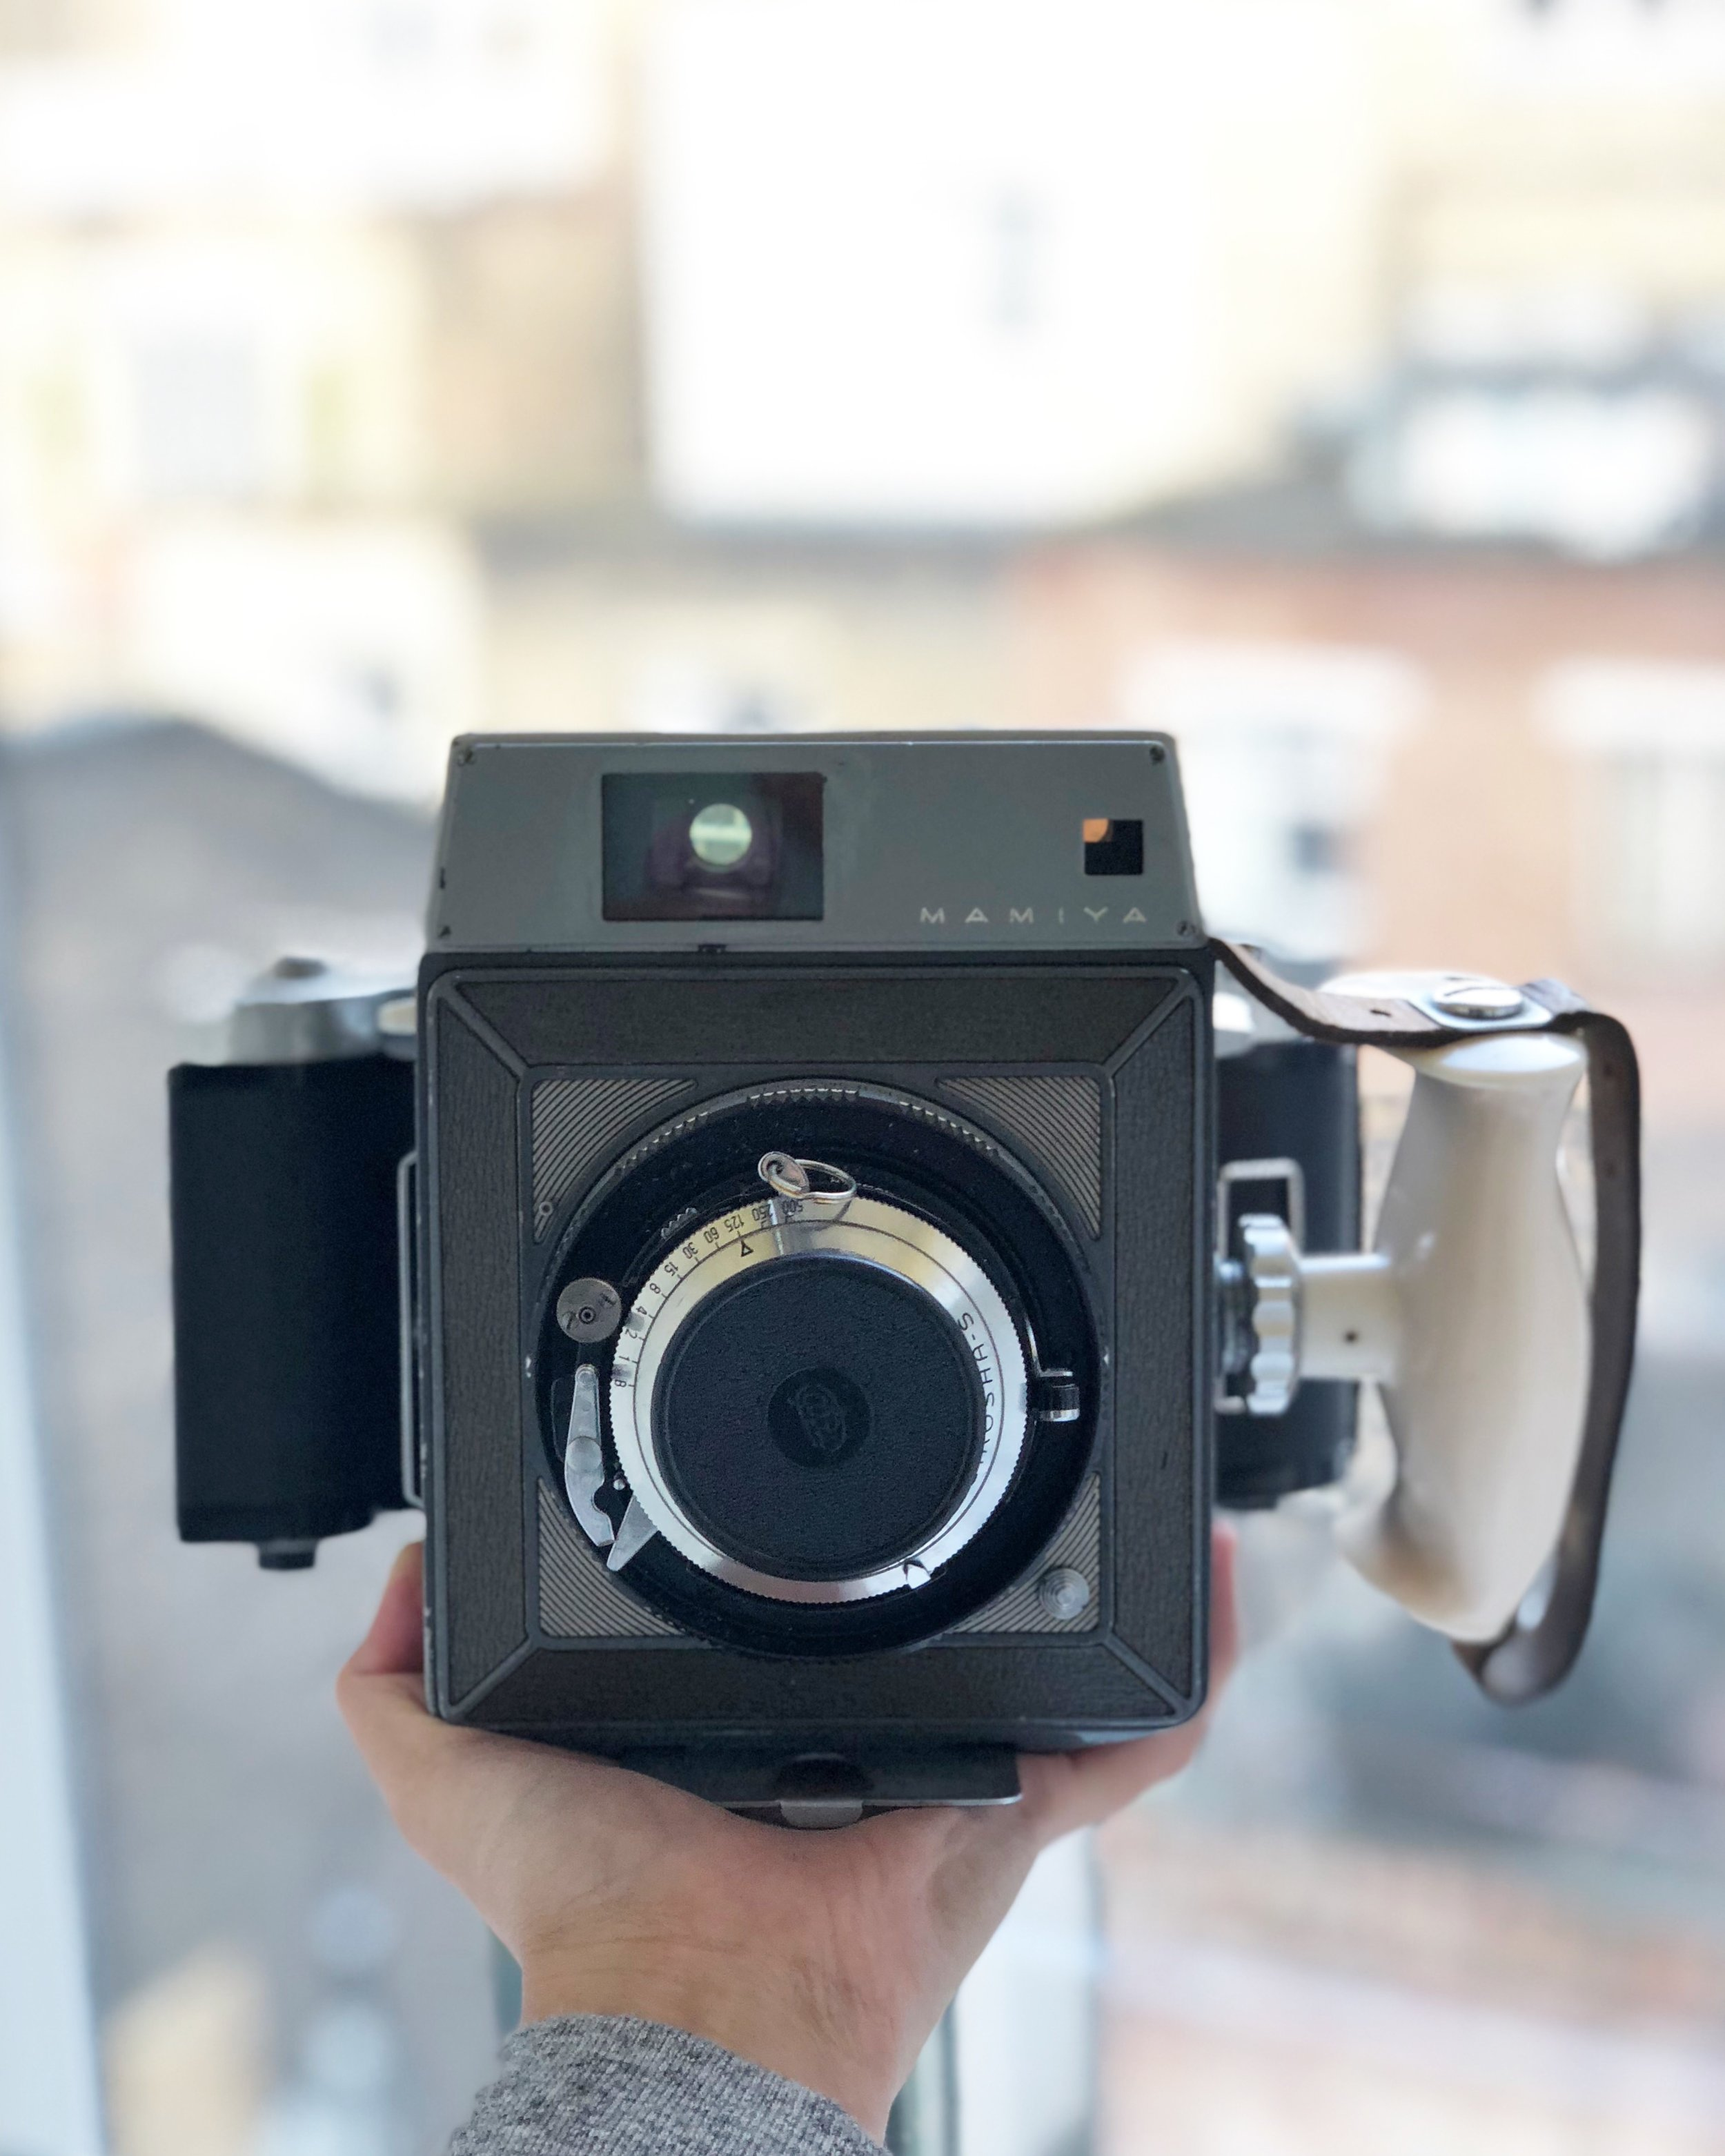 The Original Mamiya Press, also my original Mr. Cad purchase before I traded it with their newly acquired Super 23.